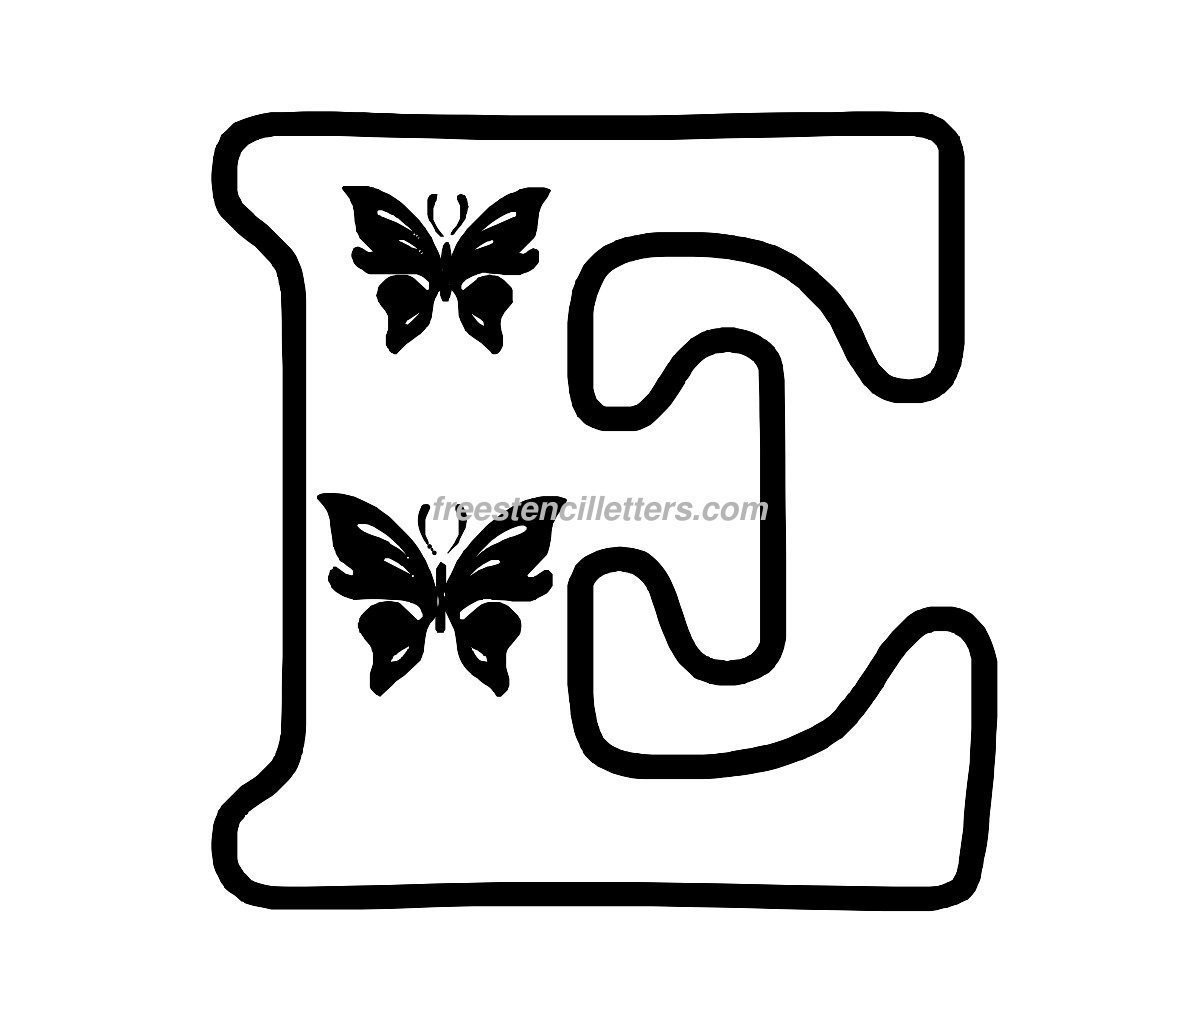 Alphabet E letters to print and cut out free - Print E Letter Stencil